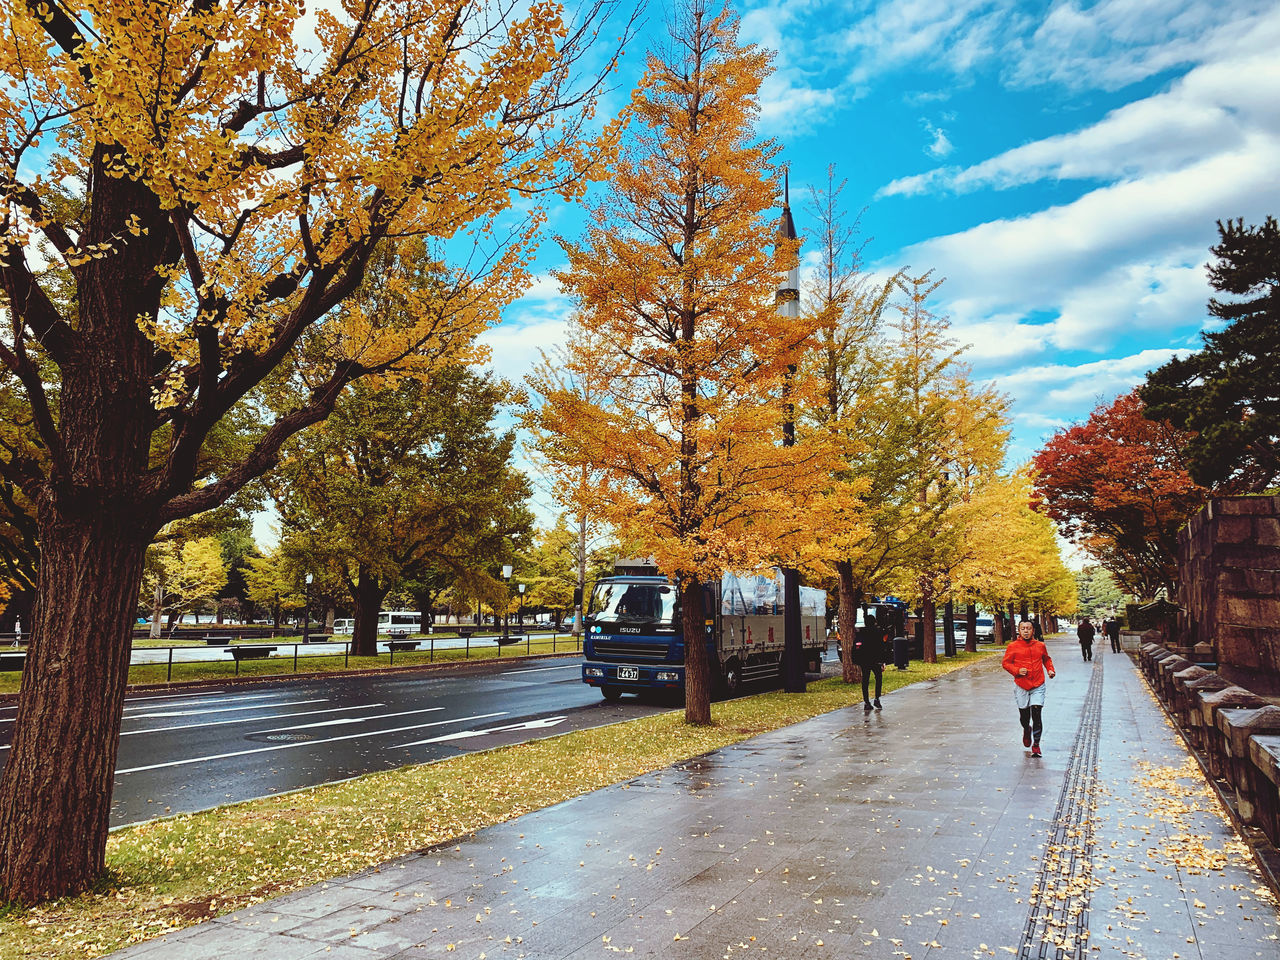 TREES BY WET STREET IN CITY DURING AUTUMN